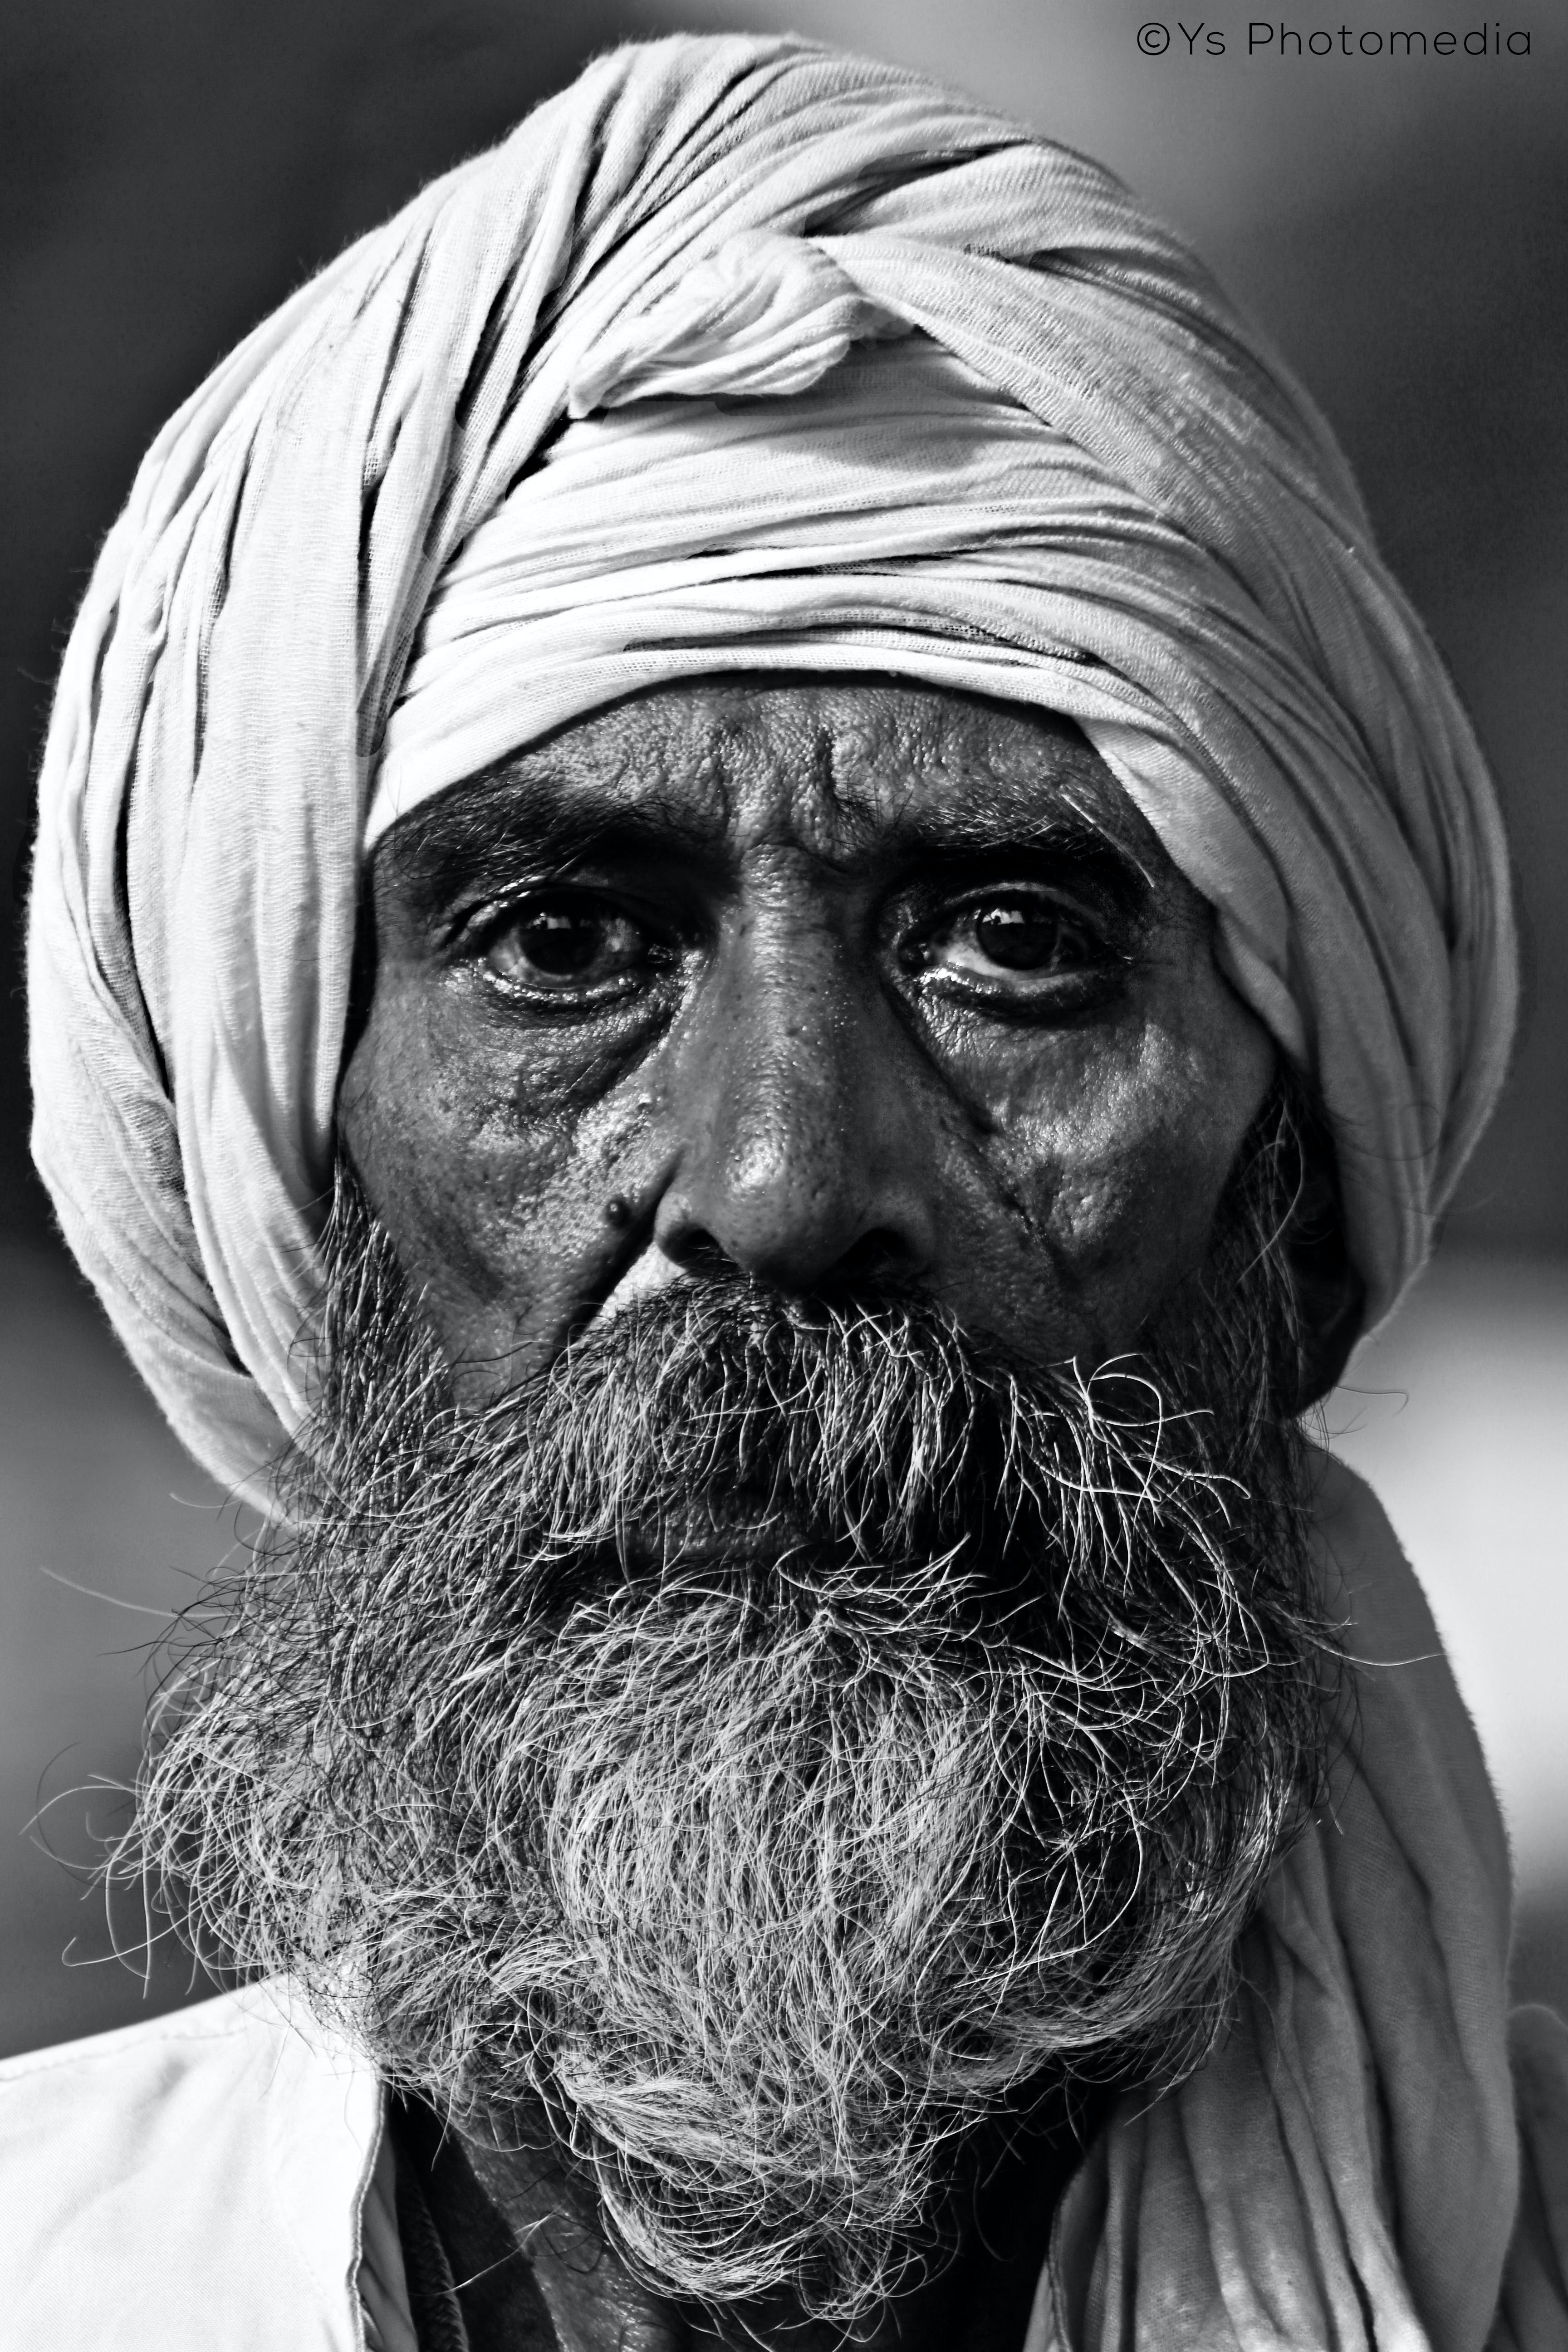 Man Wearing White Turban Grayscale Photo